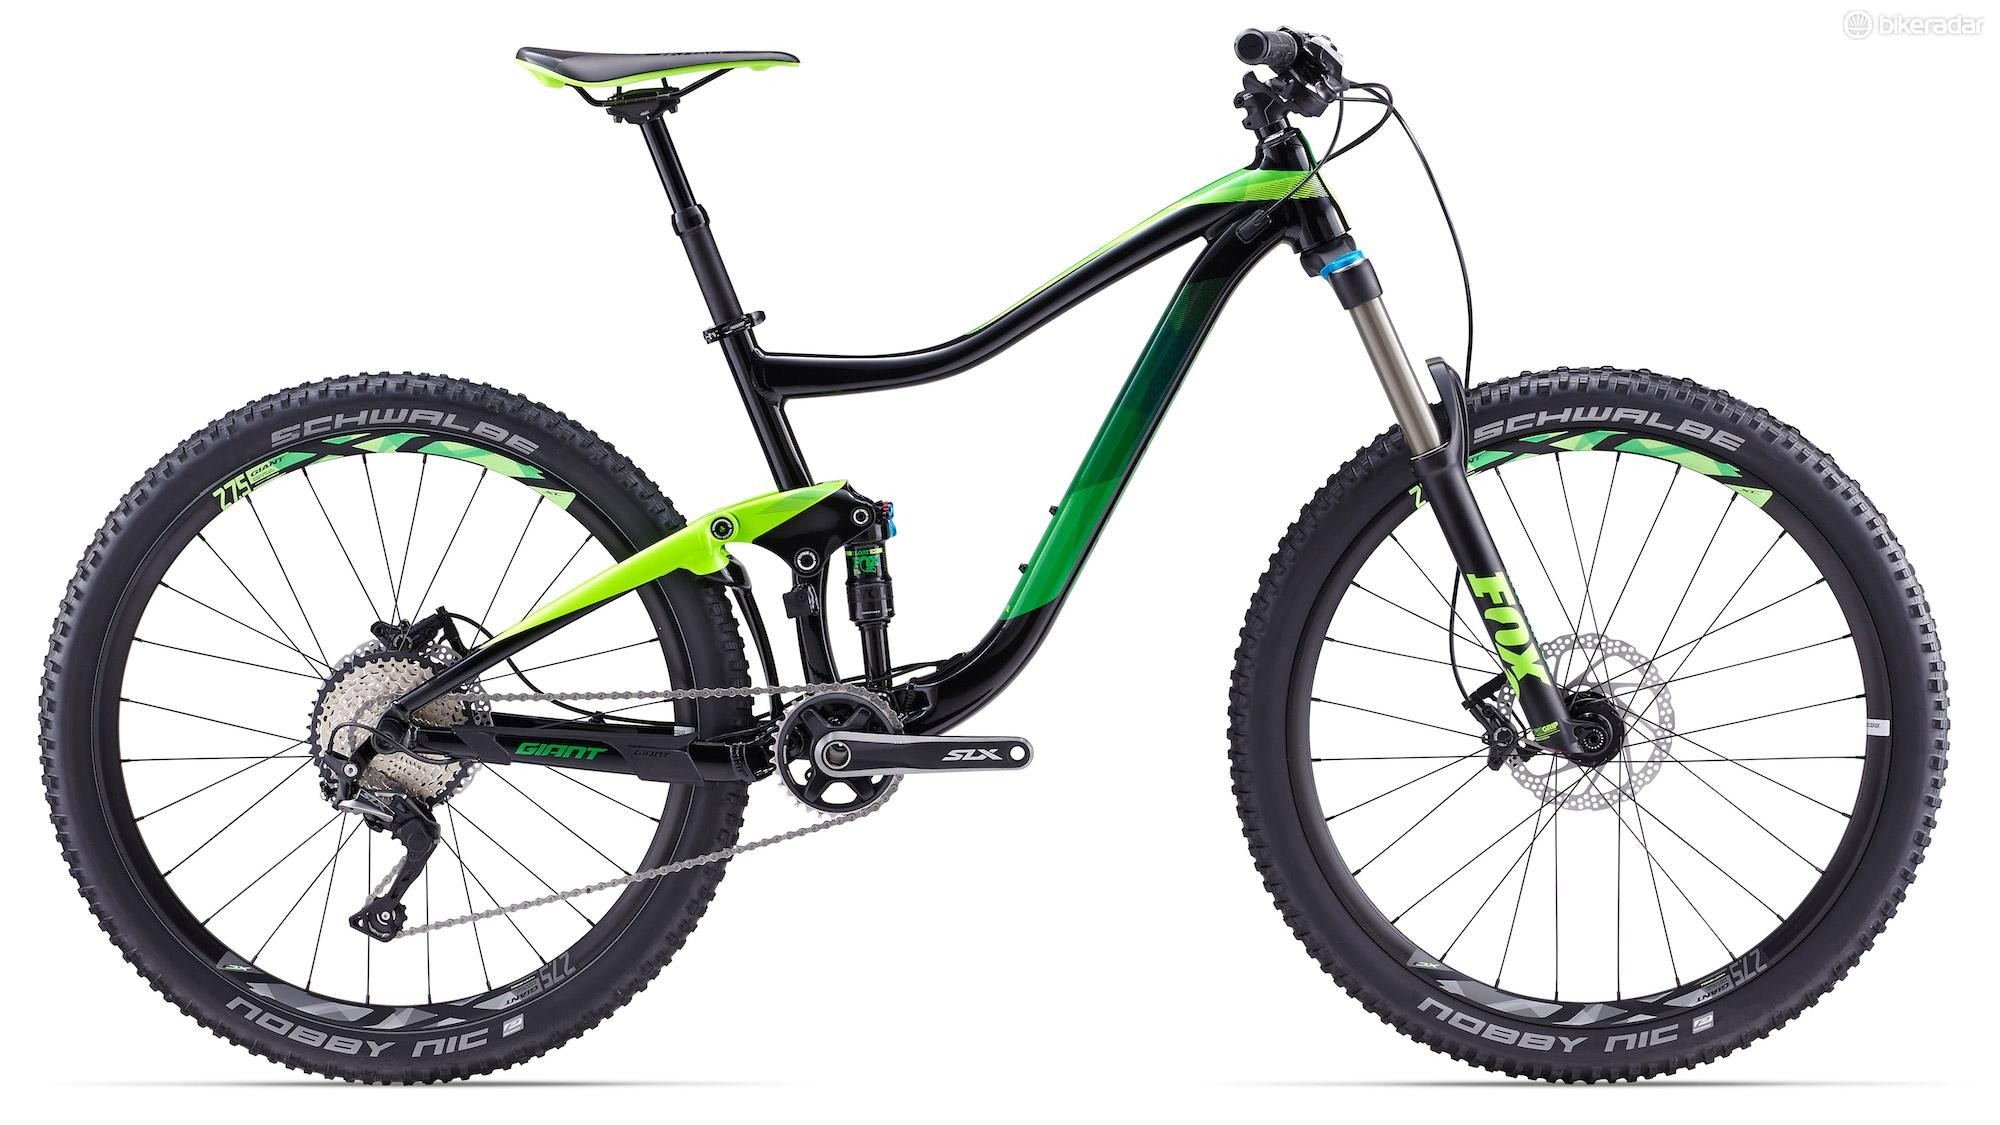 """The Trance is highlighted by an ALLUX SL alloy frame, 140/150mm Fox shocks, and 27. 5"""" hoops"""